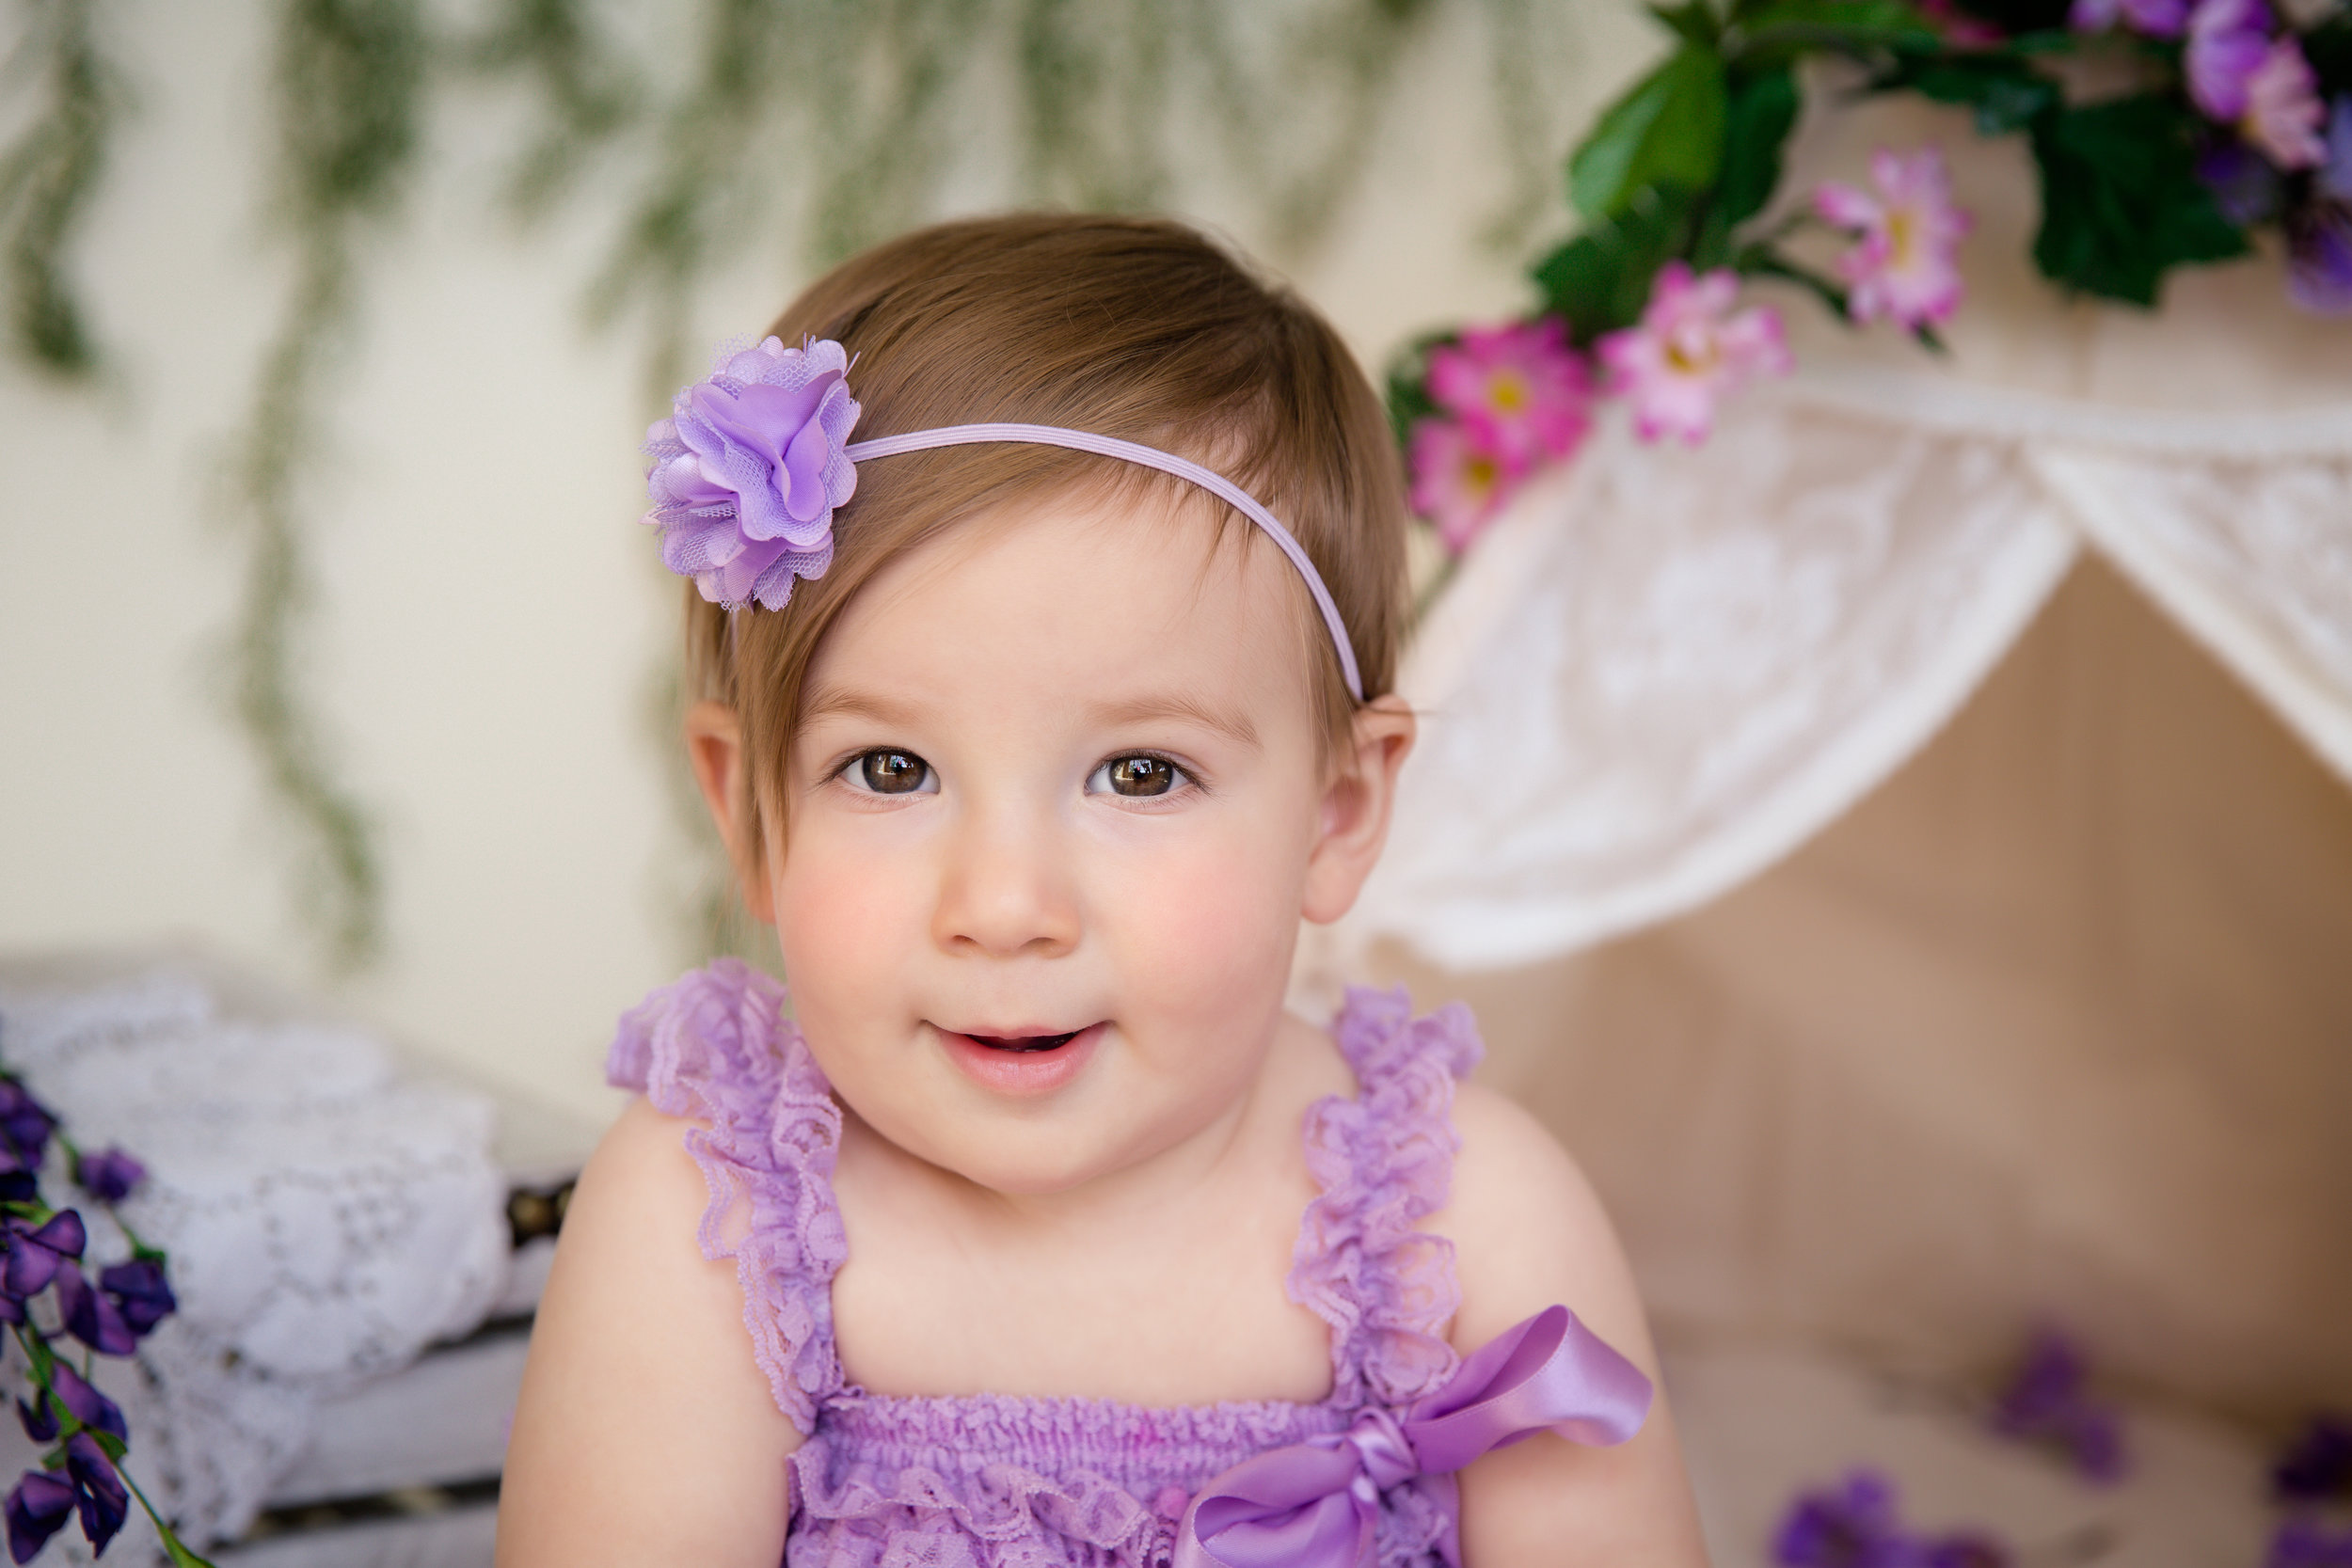 Beautiful baby girl, wearing a purple romper and looking right at the camera. Calgary baby photographer. Milashka Photography